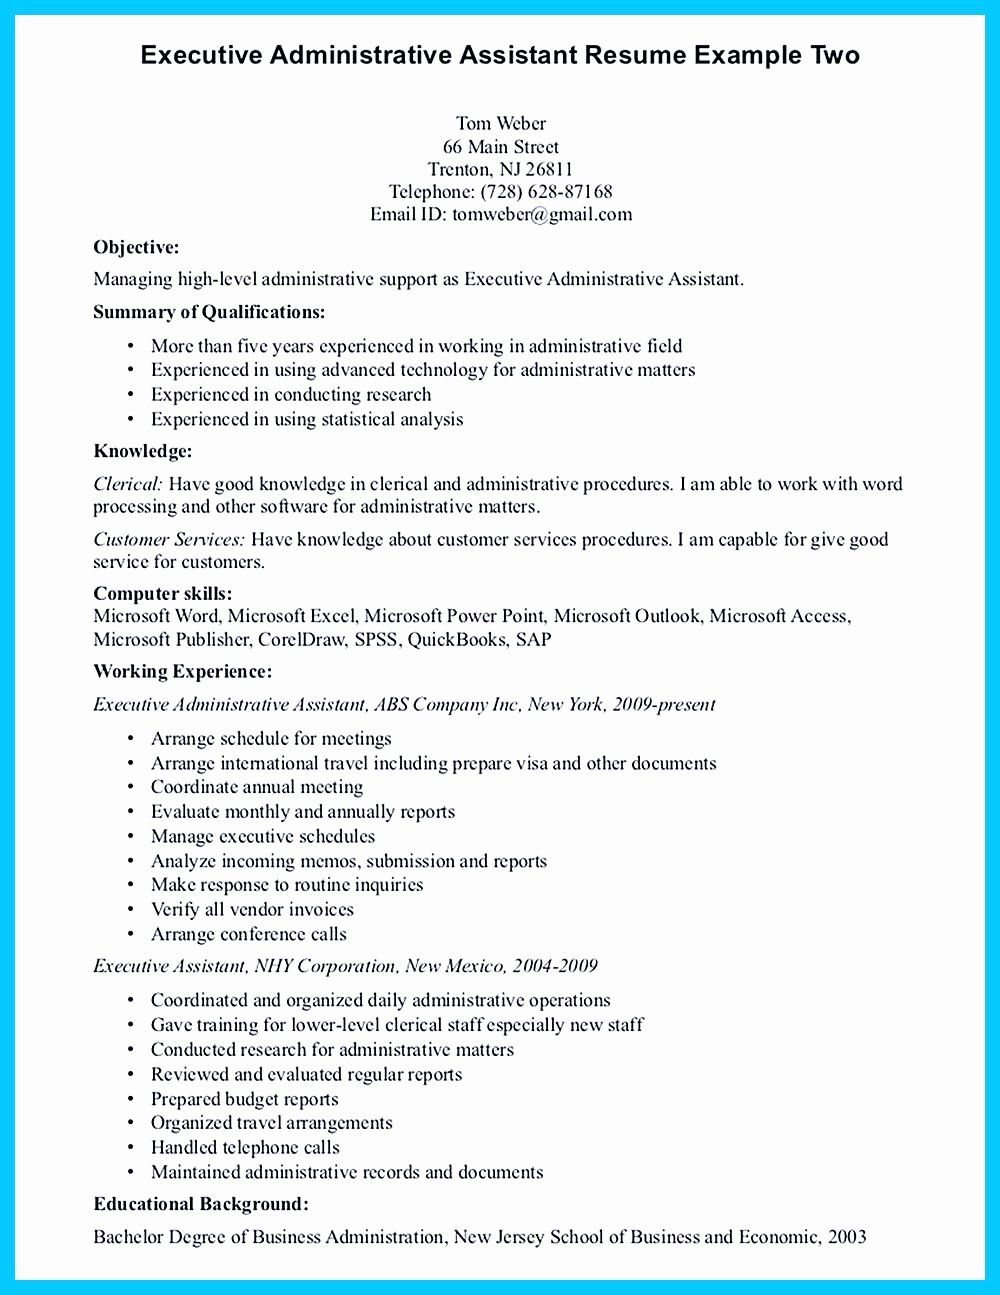 25 Administrative assistant Resume Summary in 2020